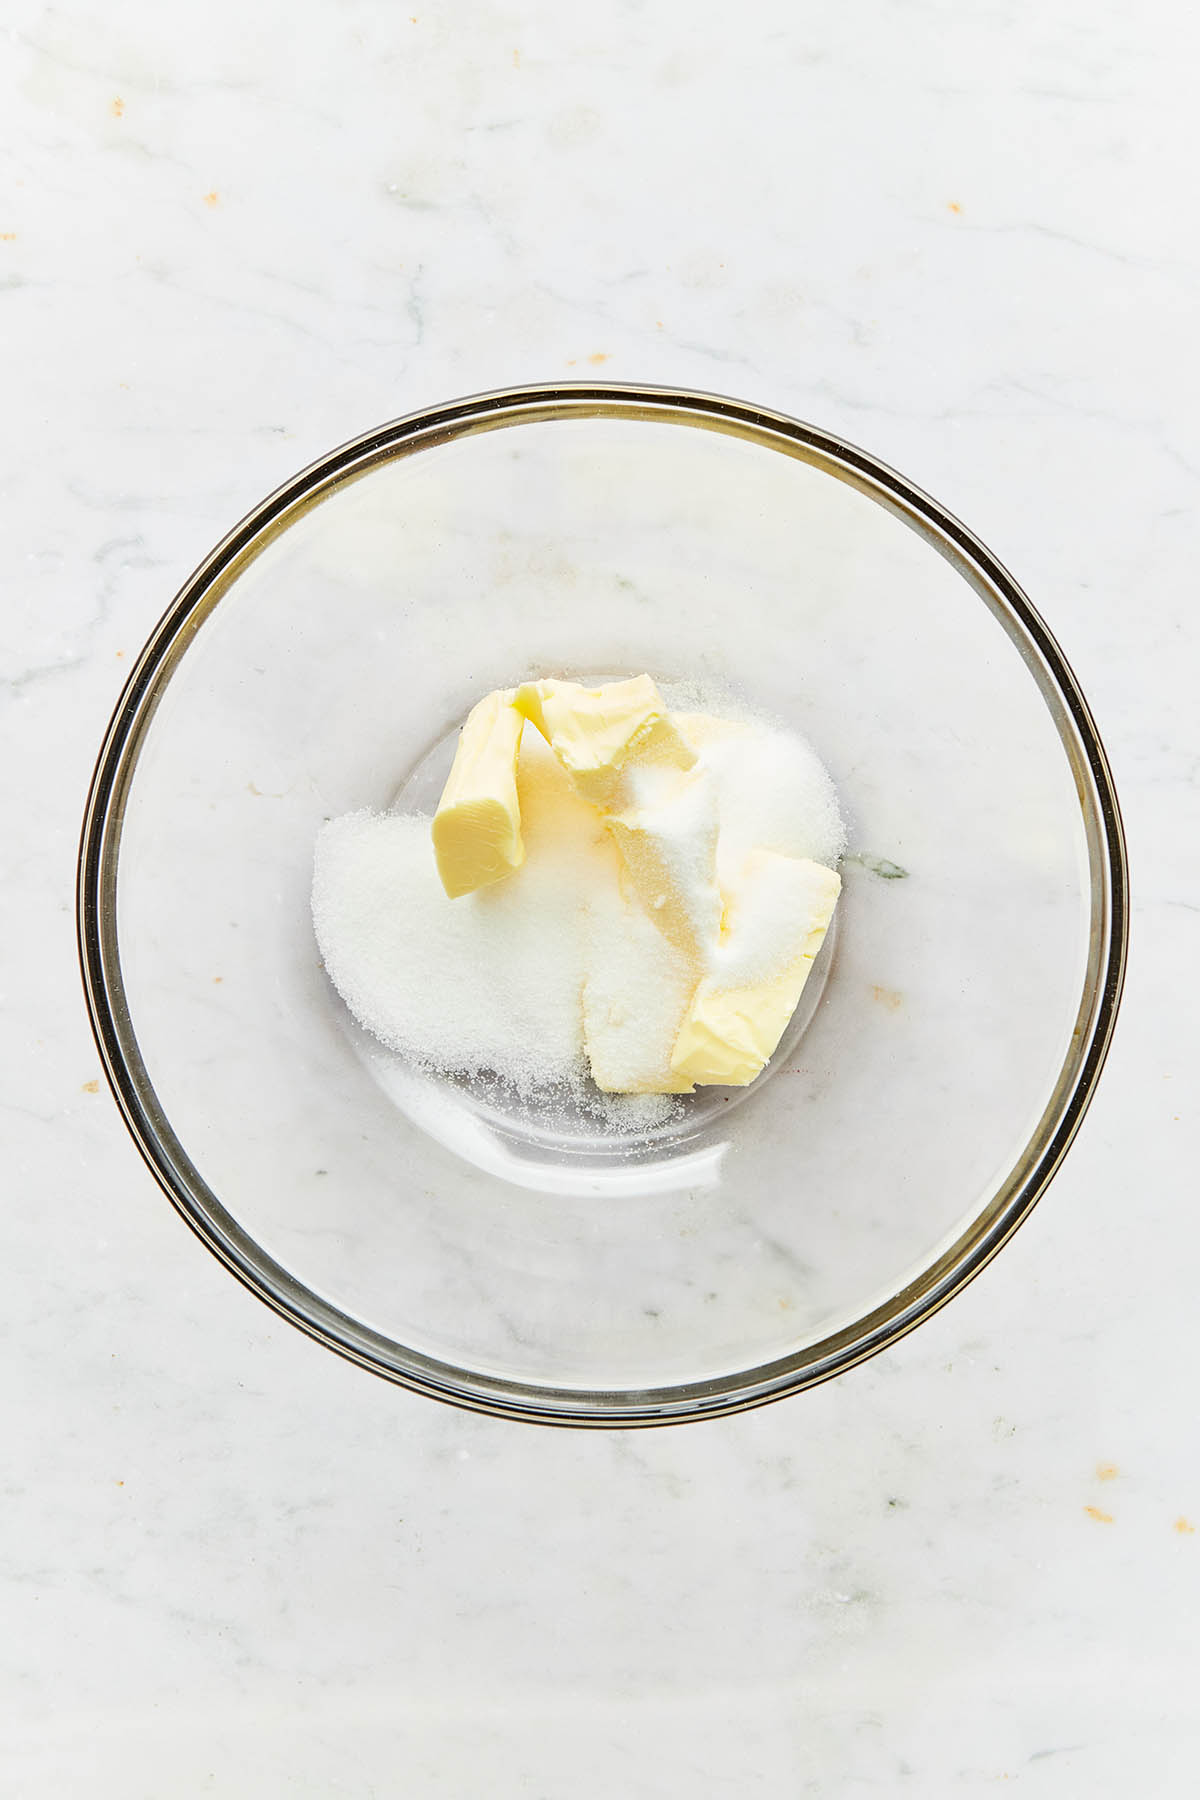 Sugar and butter in a mixing bowl.